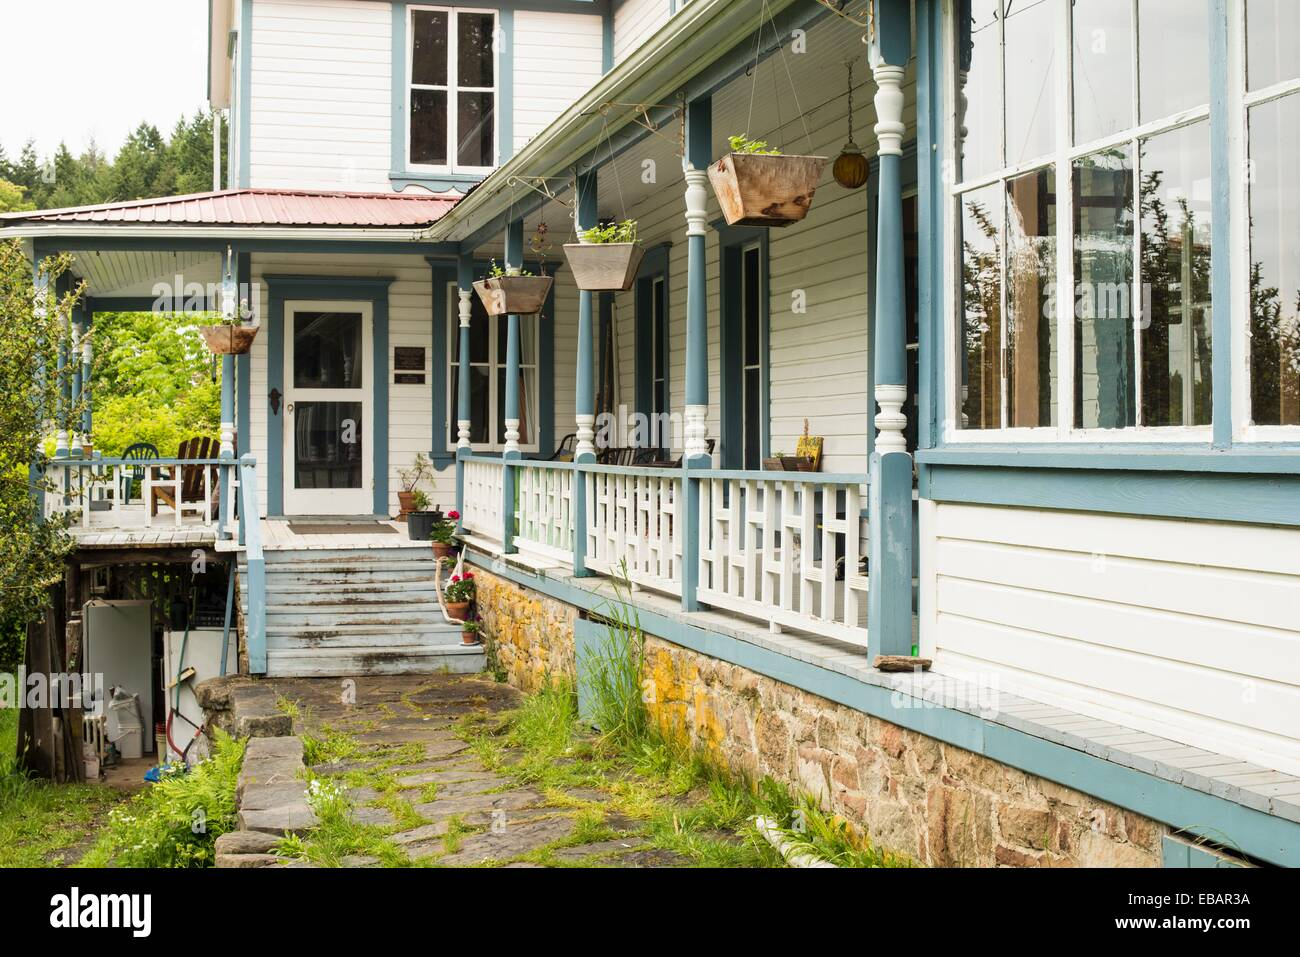 Breezy Bay Bed and Breakfast a house built in 1892 on Saturna Island Gulf Islands BC Canada. - Stock Image